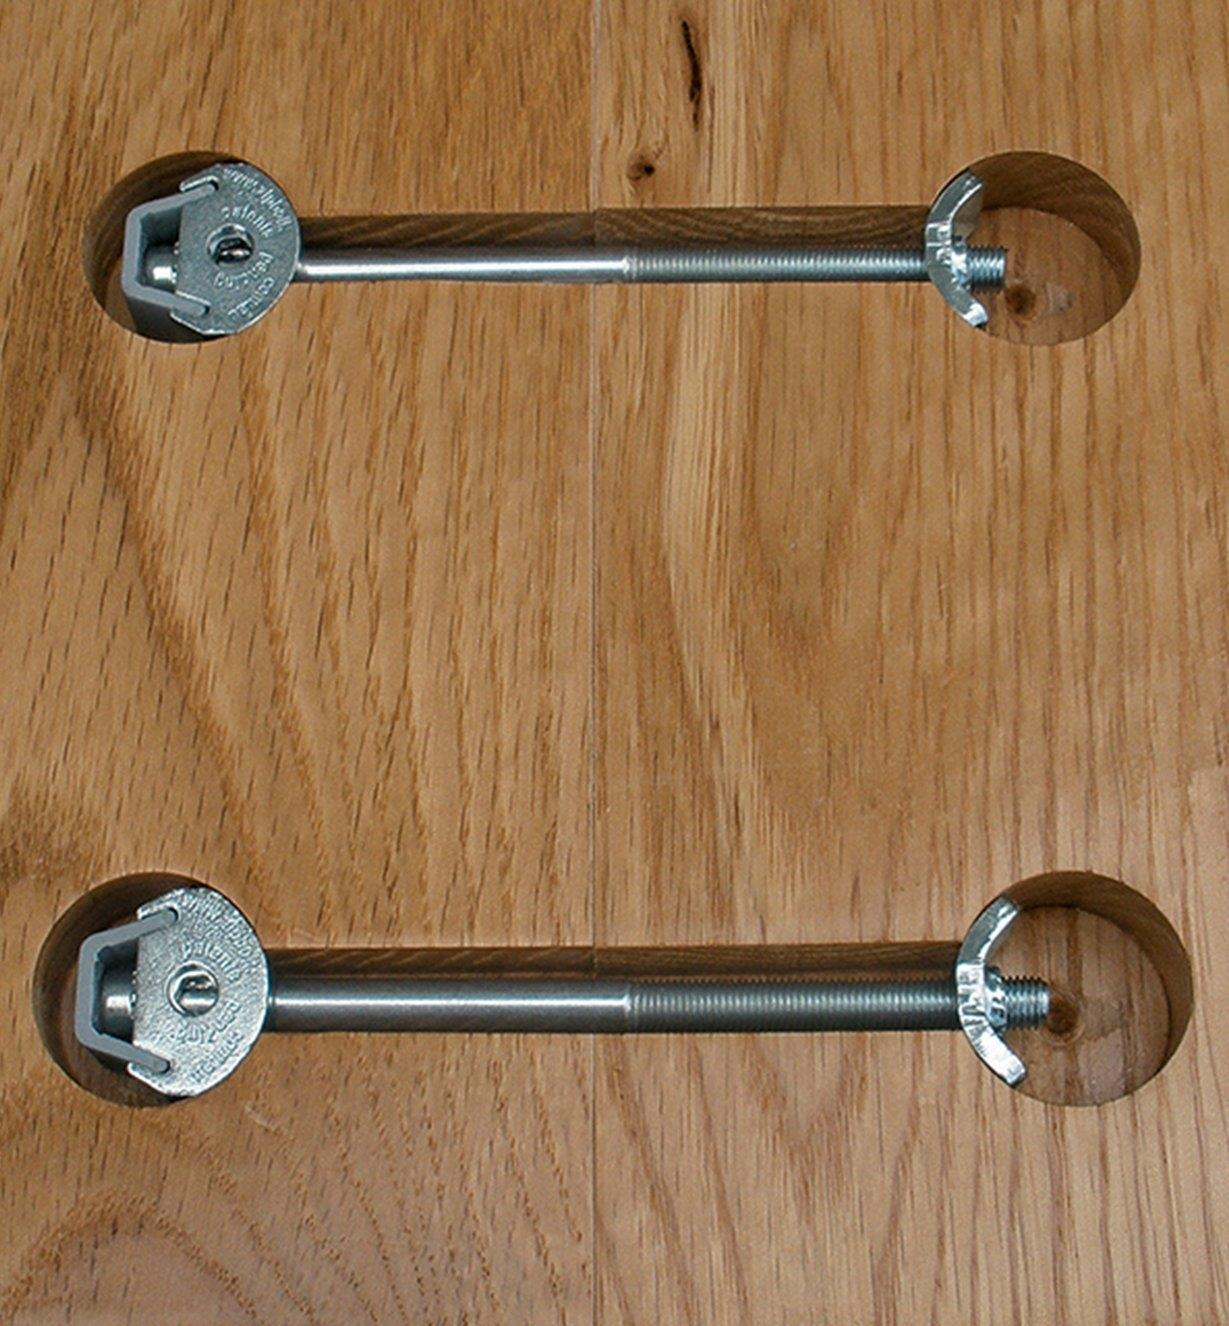 Two Zipbolt Countertop Connectors installed